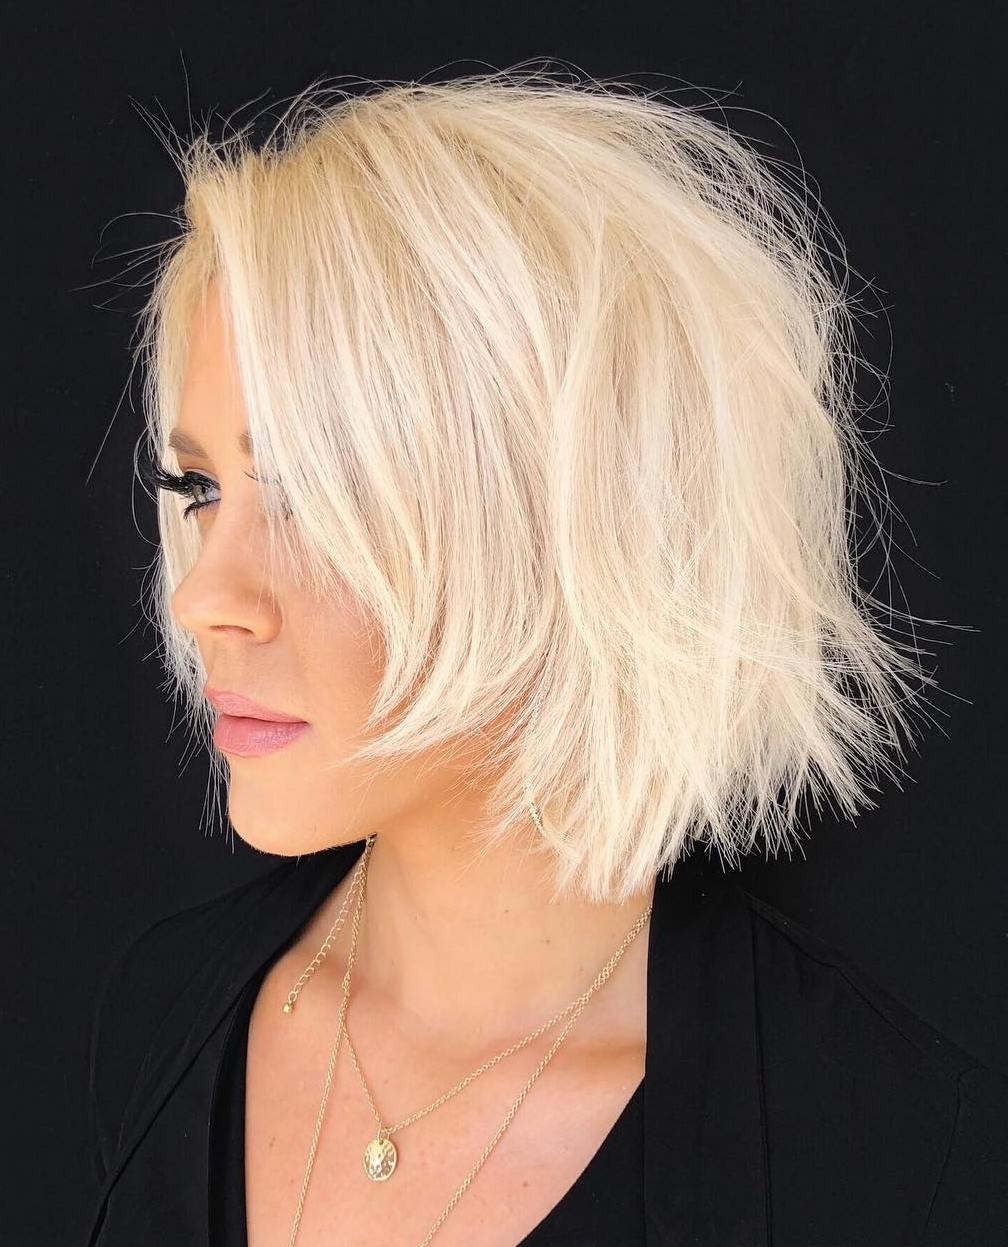 Well Known Gorgeous Wavy White Shag Haircuts Intended For 40 Modern Shag Haircuts For Women To Make A Splash (View 4 of 20)